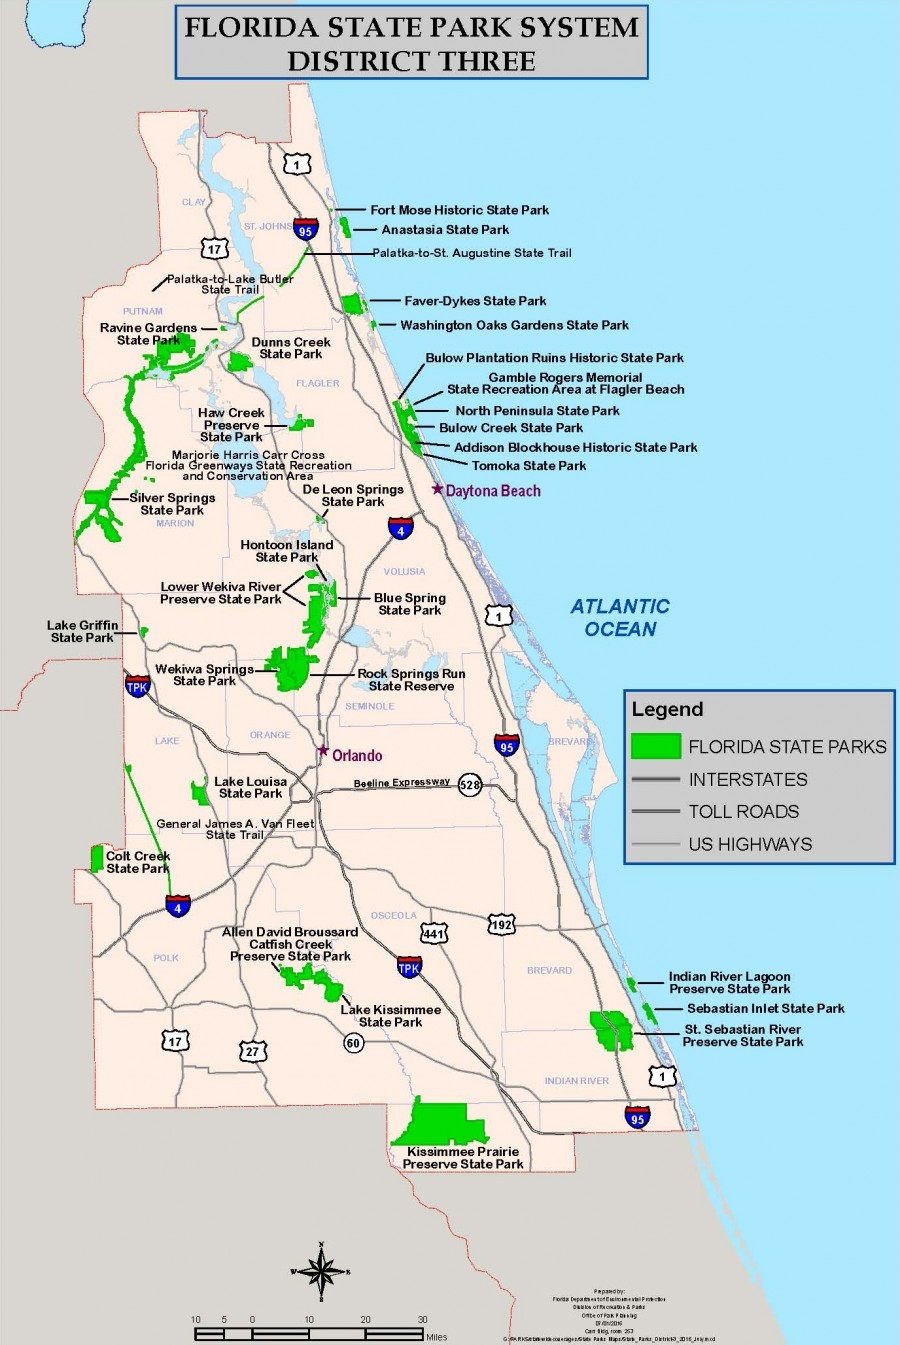 Florida State Park Map Park Mapping and Databases | Florida Department of Environmental